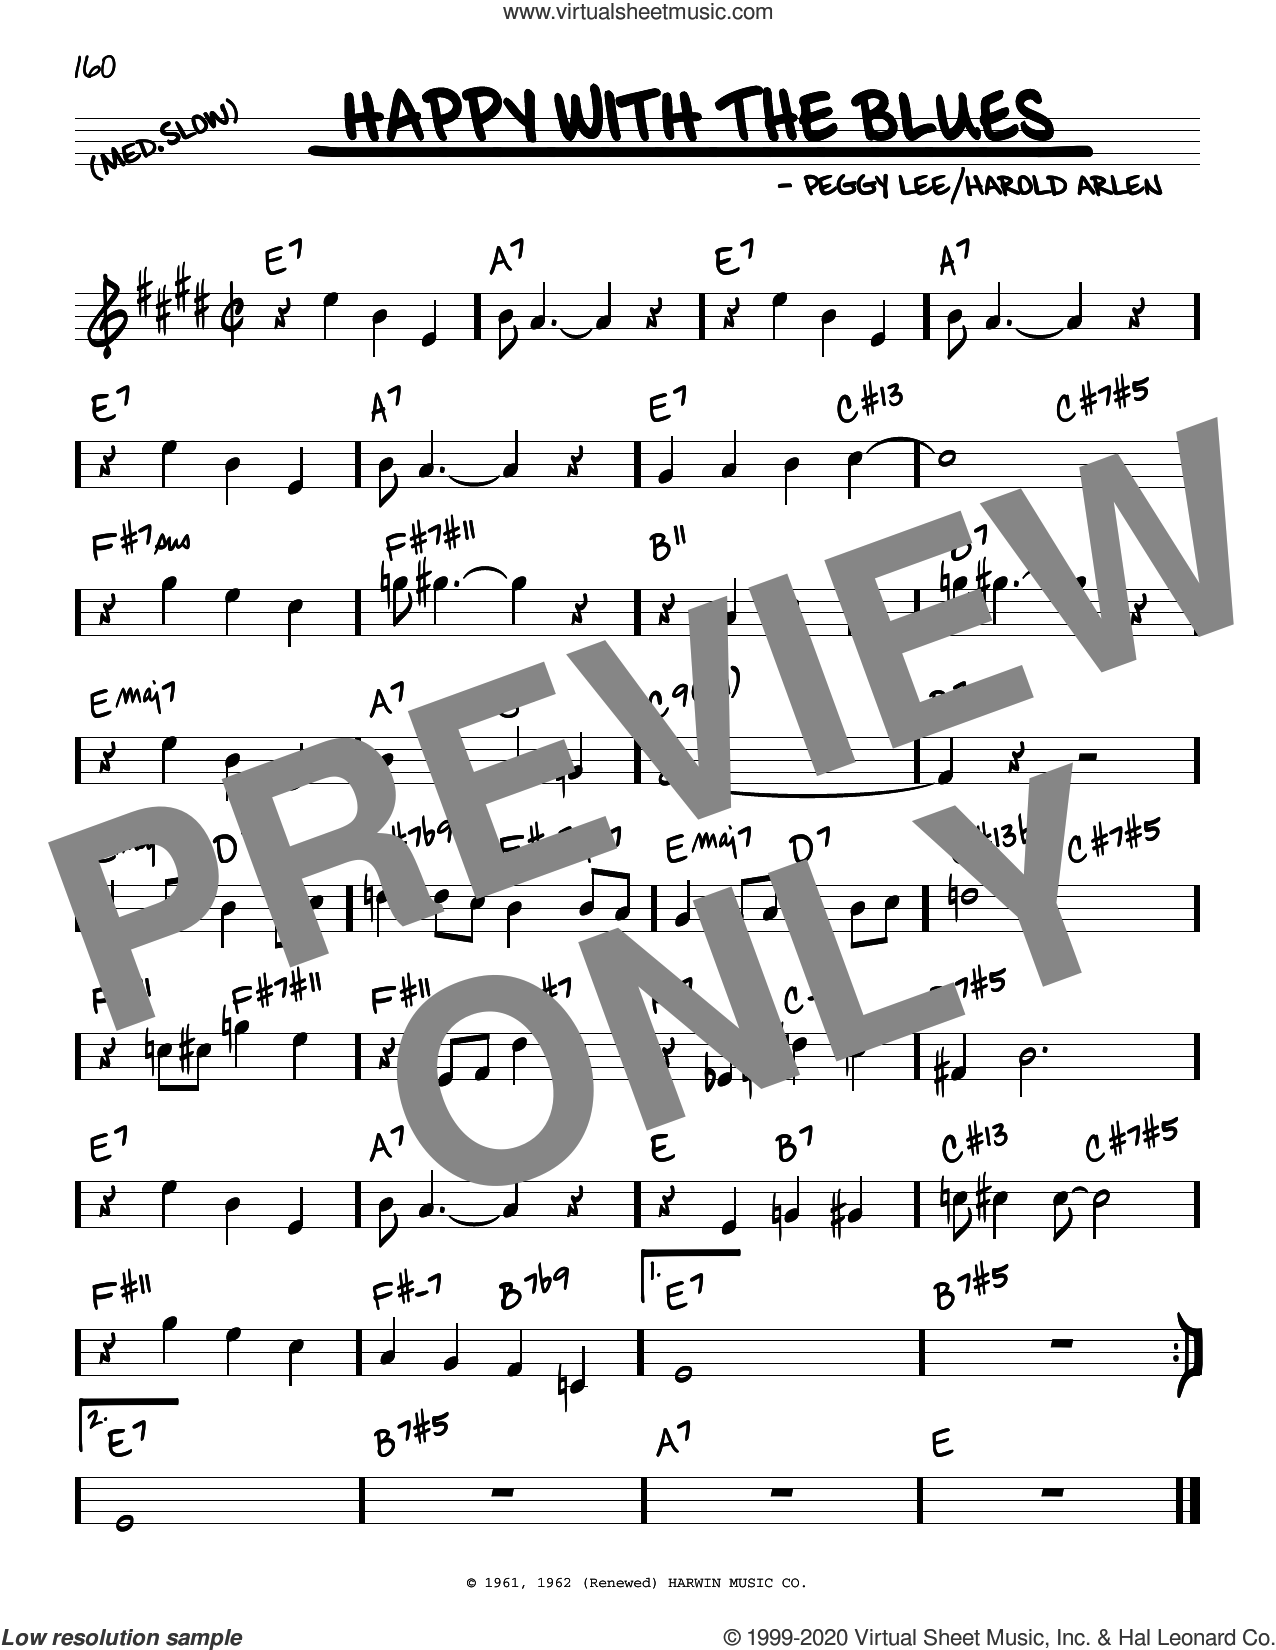 Happy With The Blues sheet music for voice and other instruments (real book) by Harold Arlen and Peggy Lee, intermediate skill level